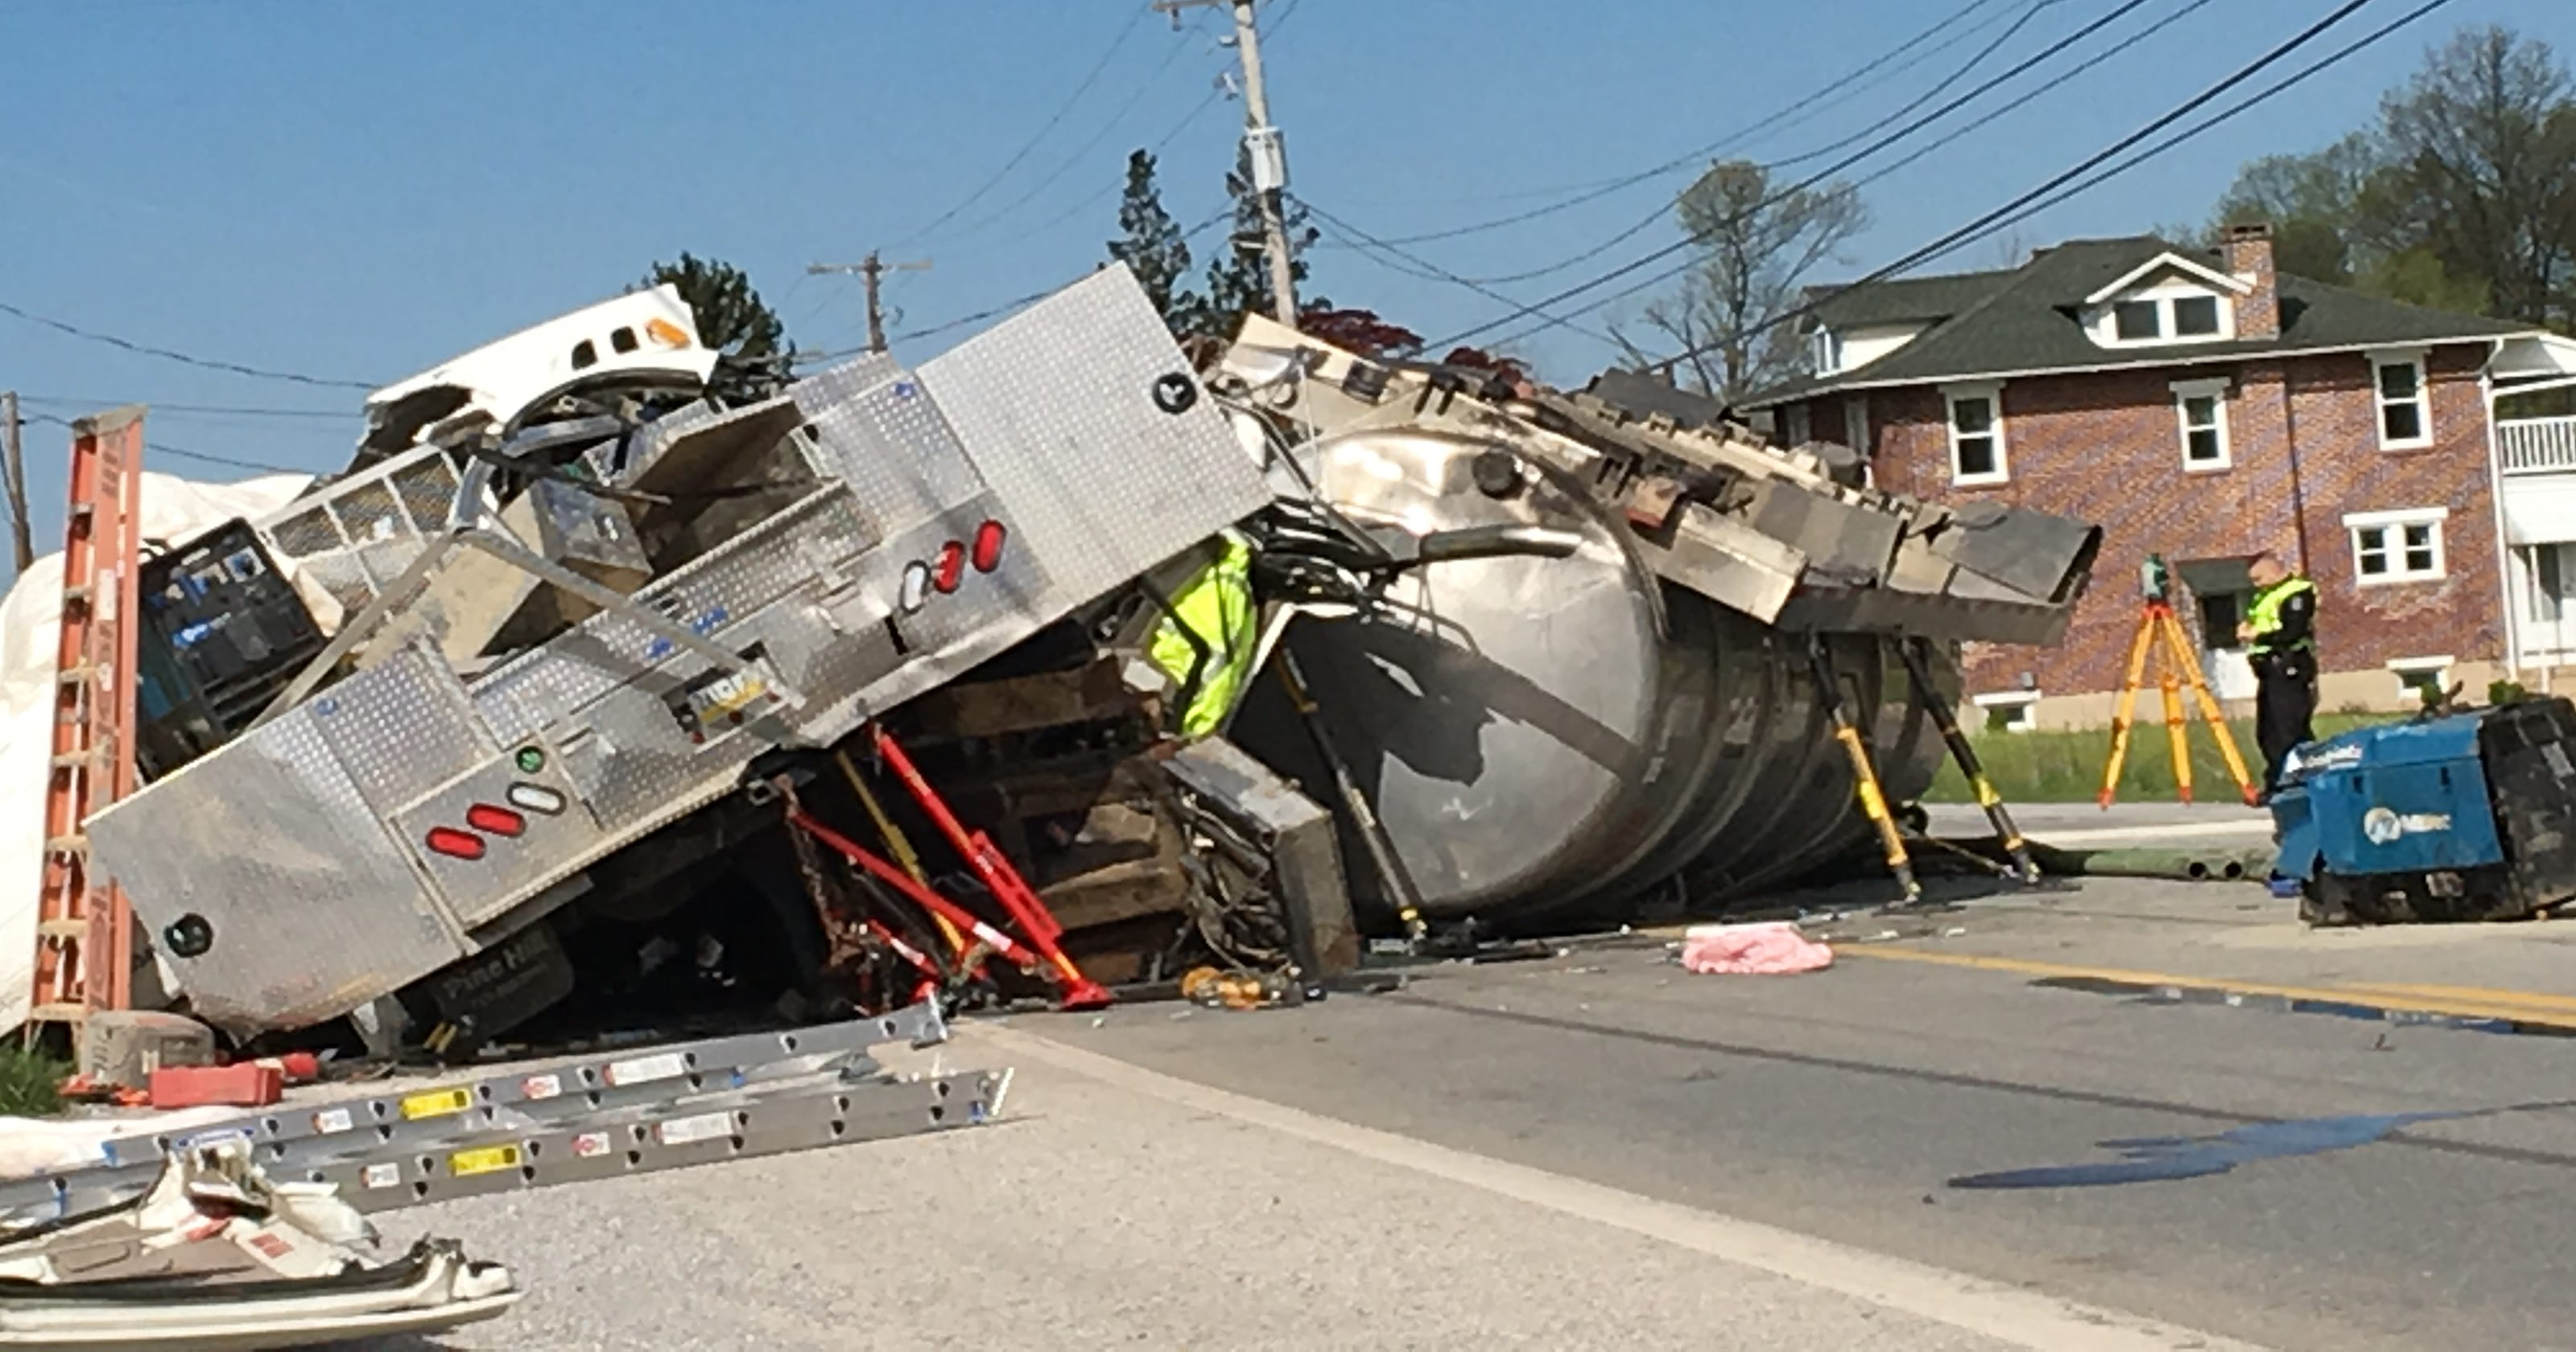 Coroner Ids 4 Killed In Paradise Twp Crash On Route 30